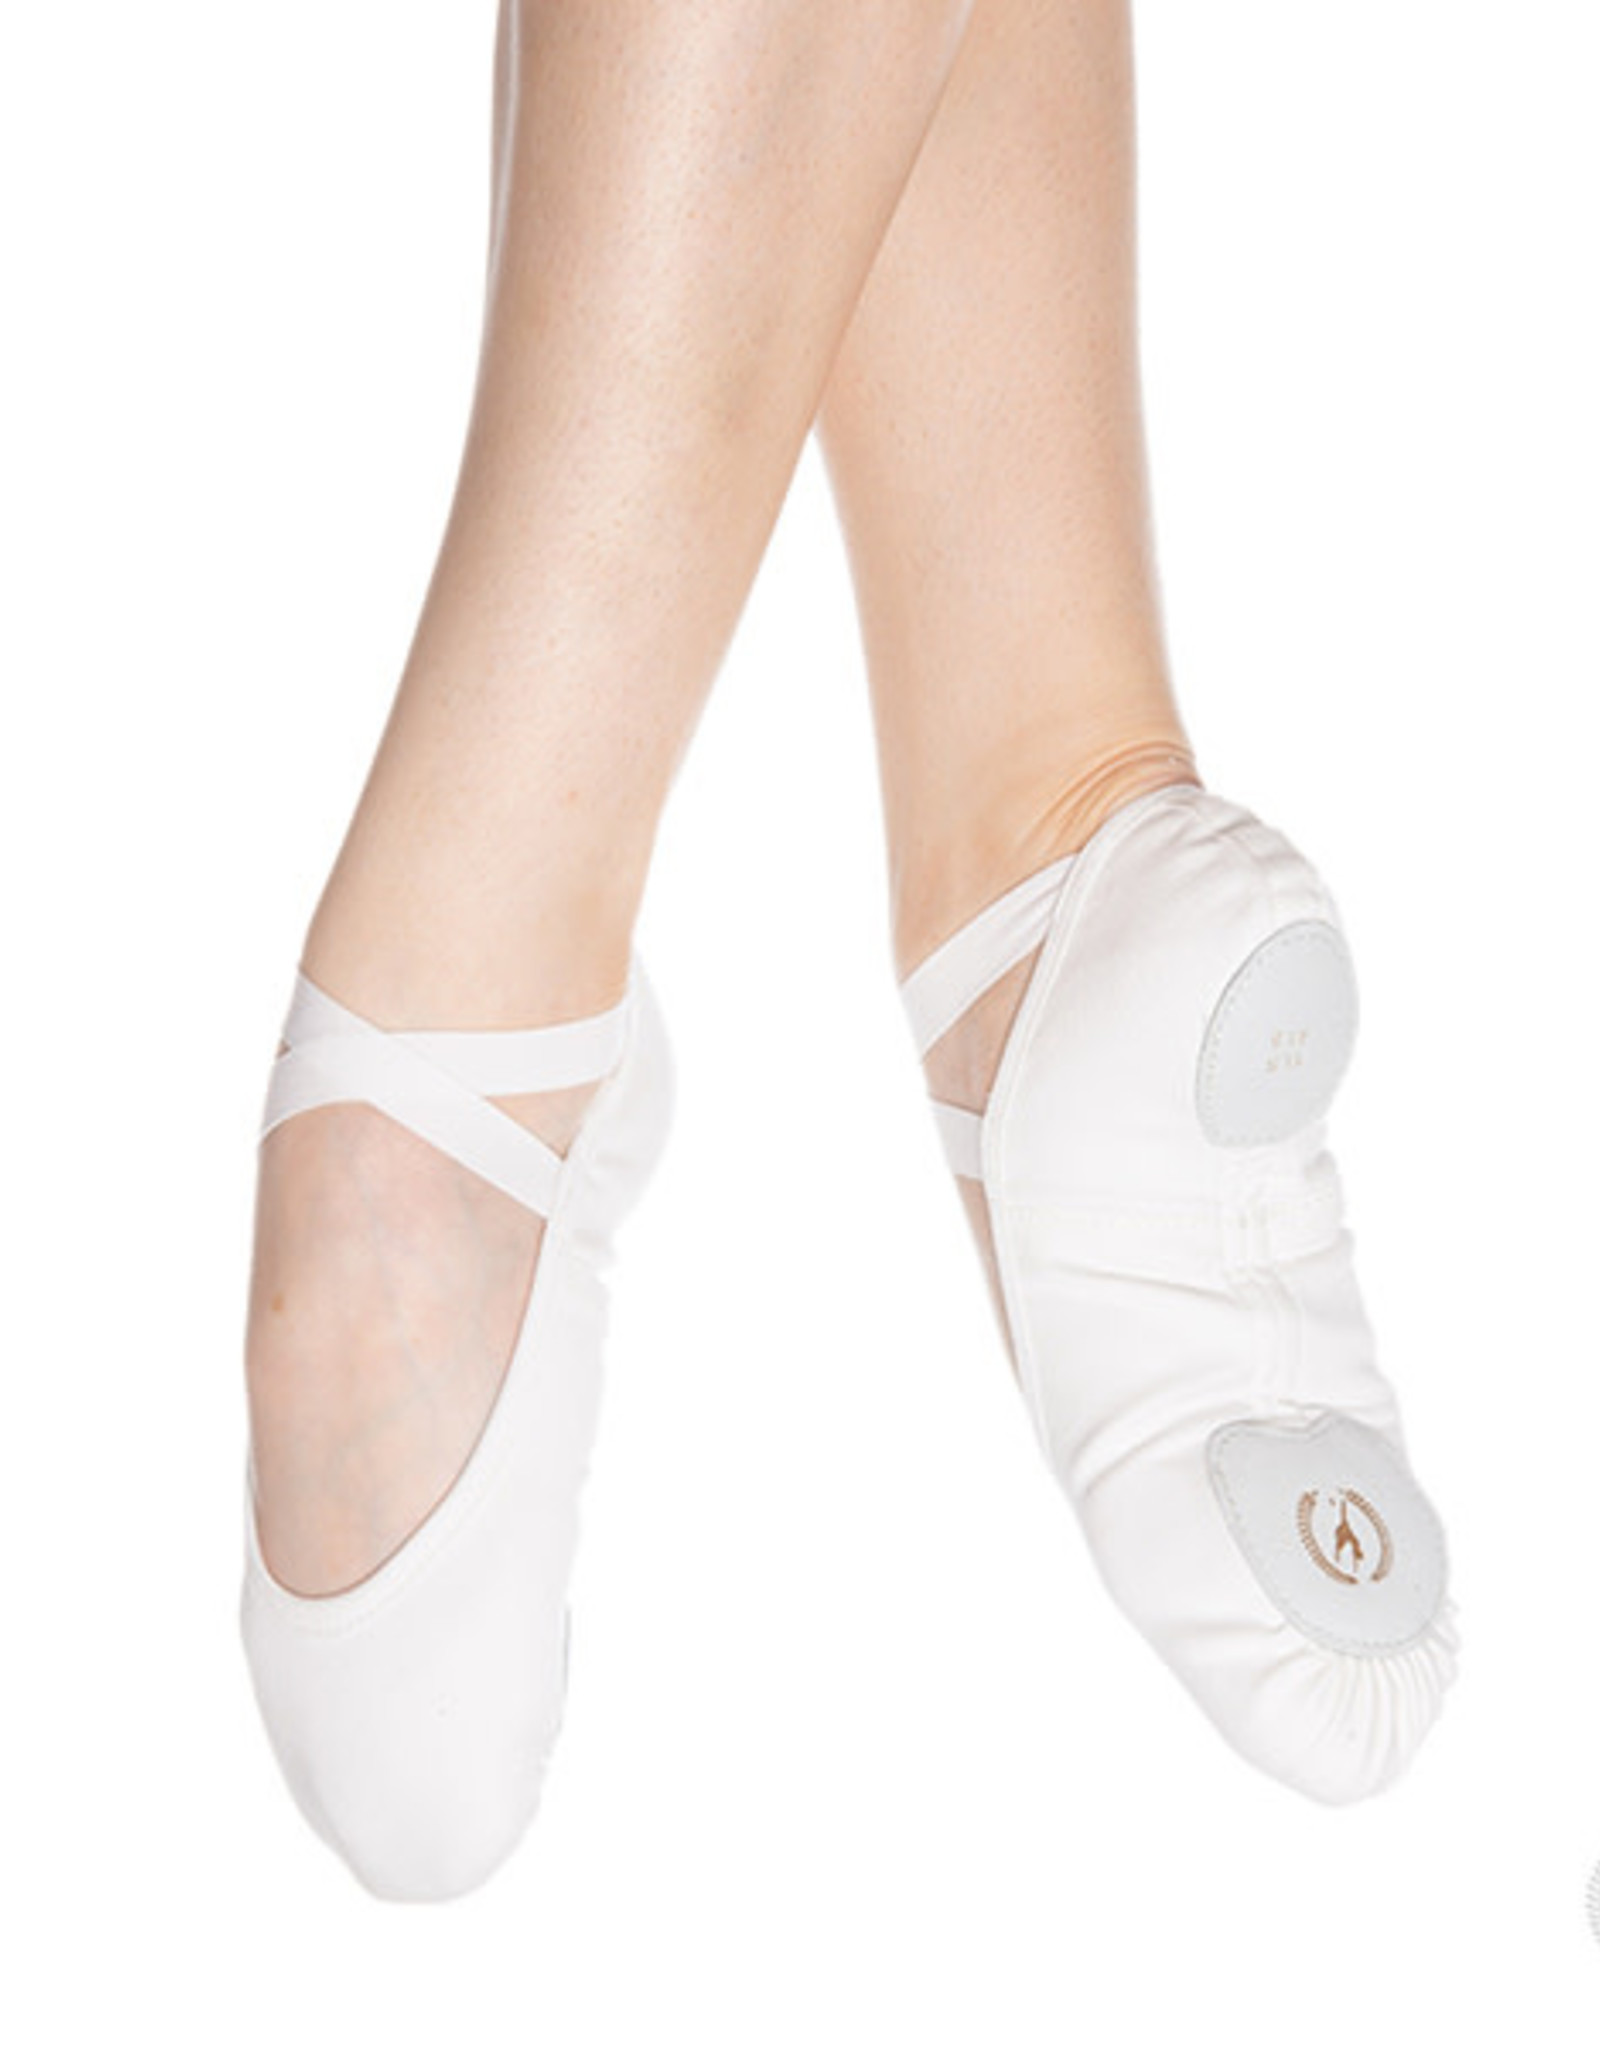 Eurotard A1004a Adult Assemblé Split Sole Canvas Ballet Shoes